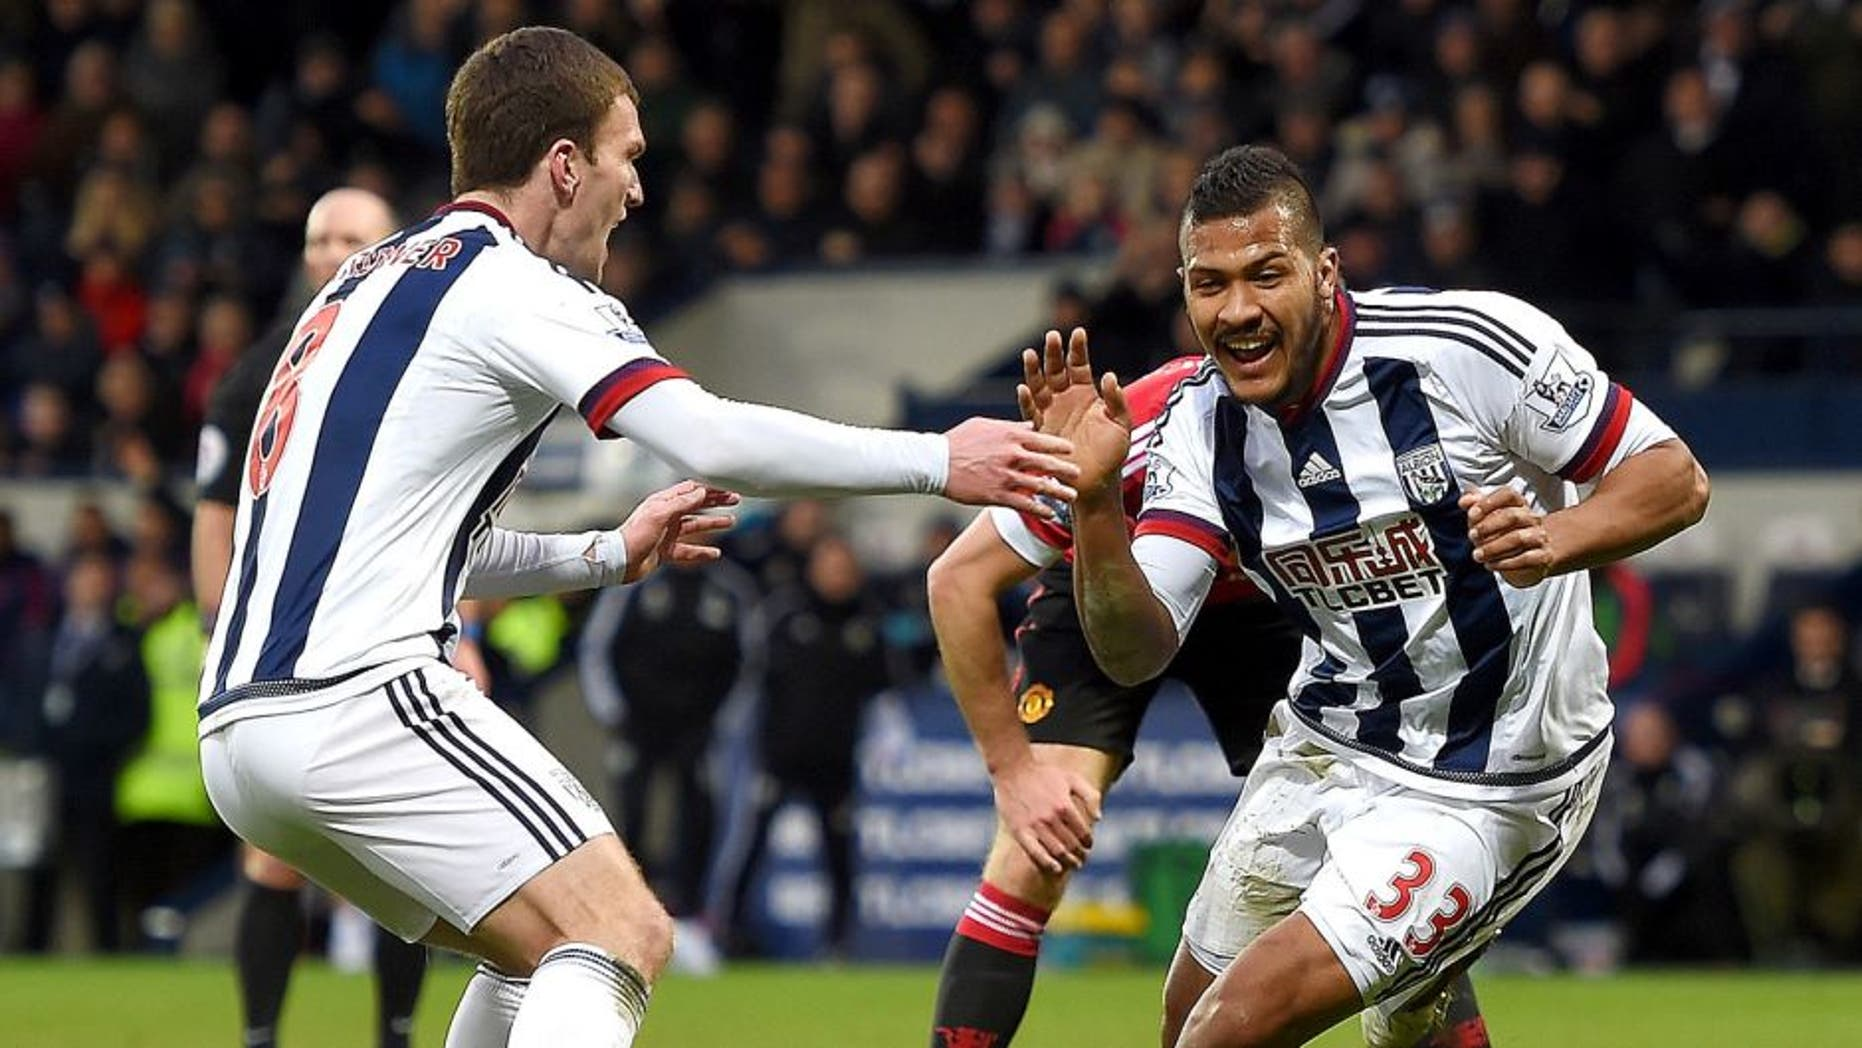 WEST BROMWICH, ENGLAND - MARCH 06: Salomon Rondon of West Bromwich Albion celebrates scoring the opening goal during the Barclays Premier League match between West Bromwich Albion and Manchester United at The Hawthorns on March 6, 2016 in West Bromwich, England. (Photo by Michael Regan/Getty Images)